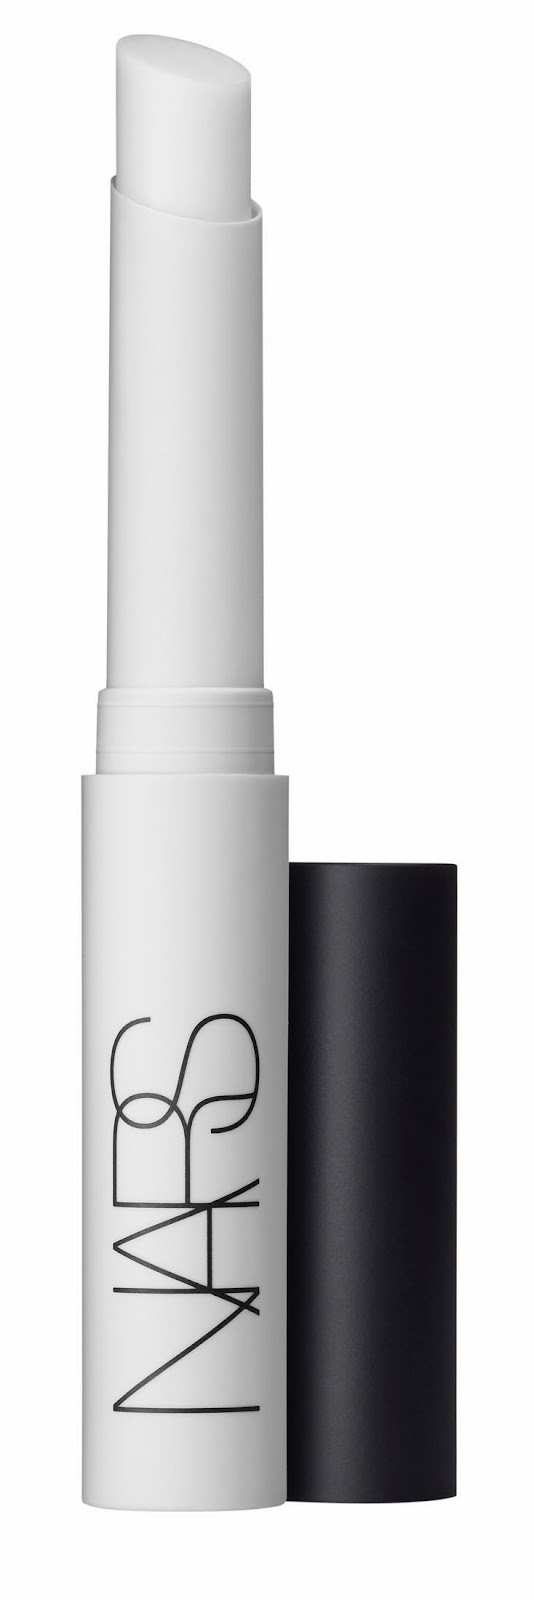 PRO-PRIME™ Instant Line and Pore Perfector